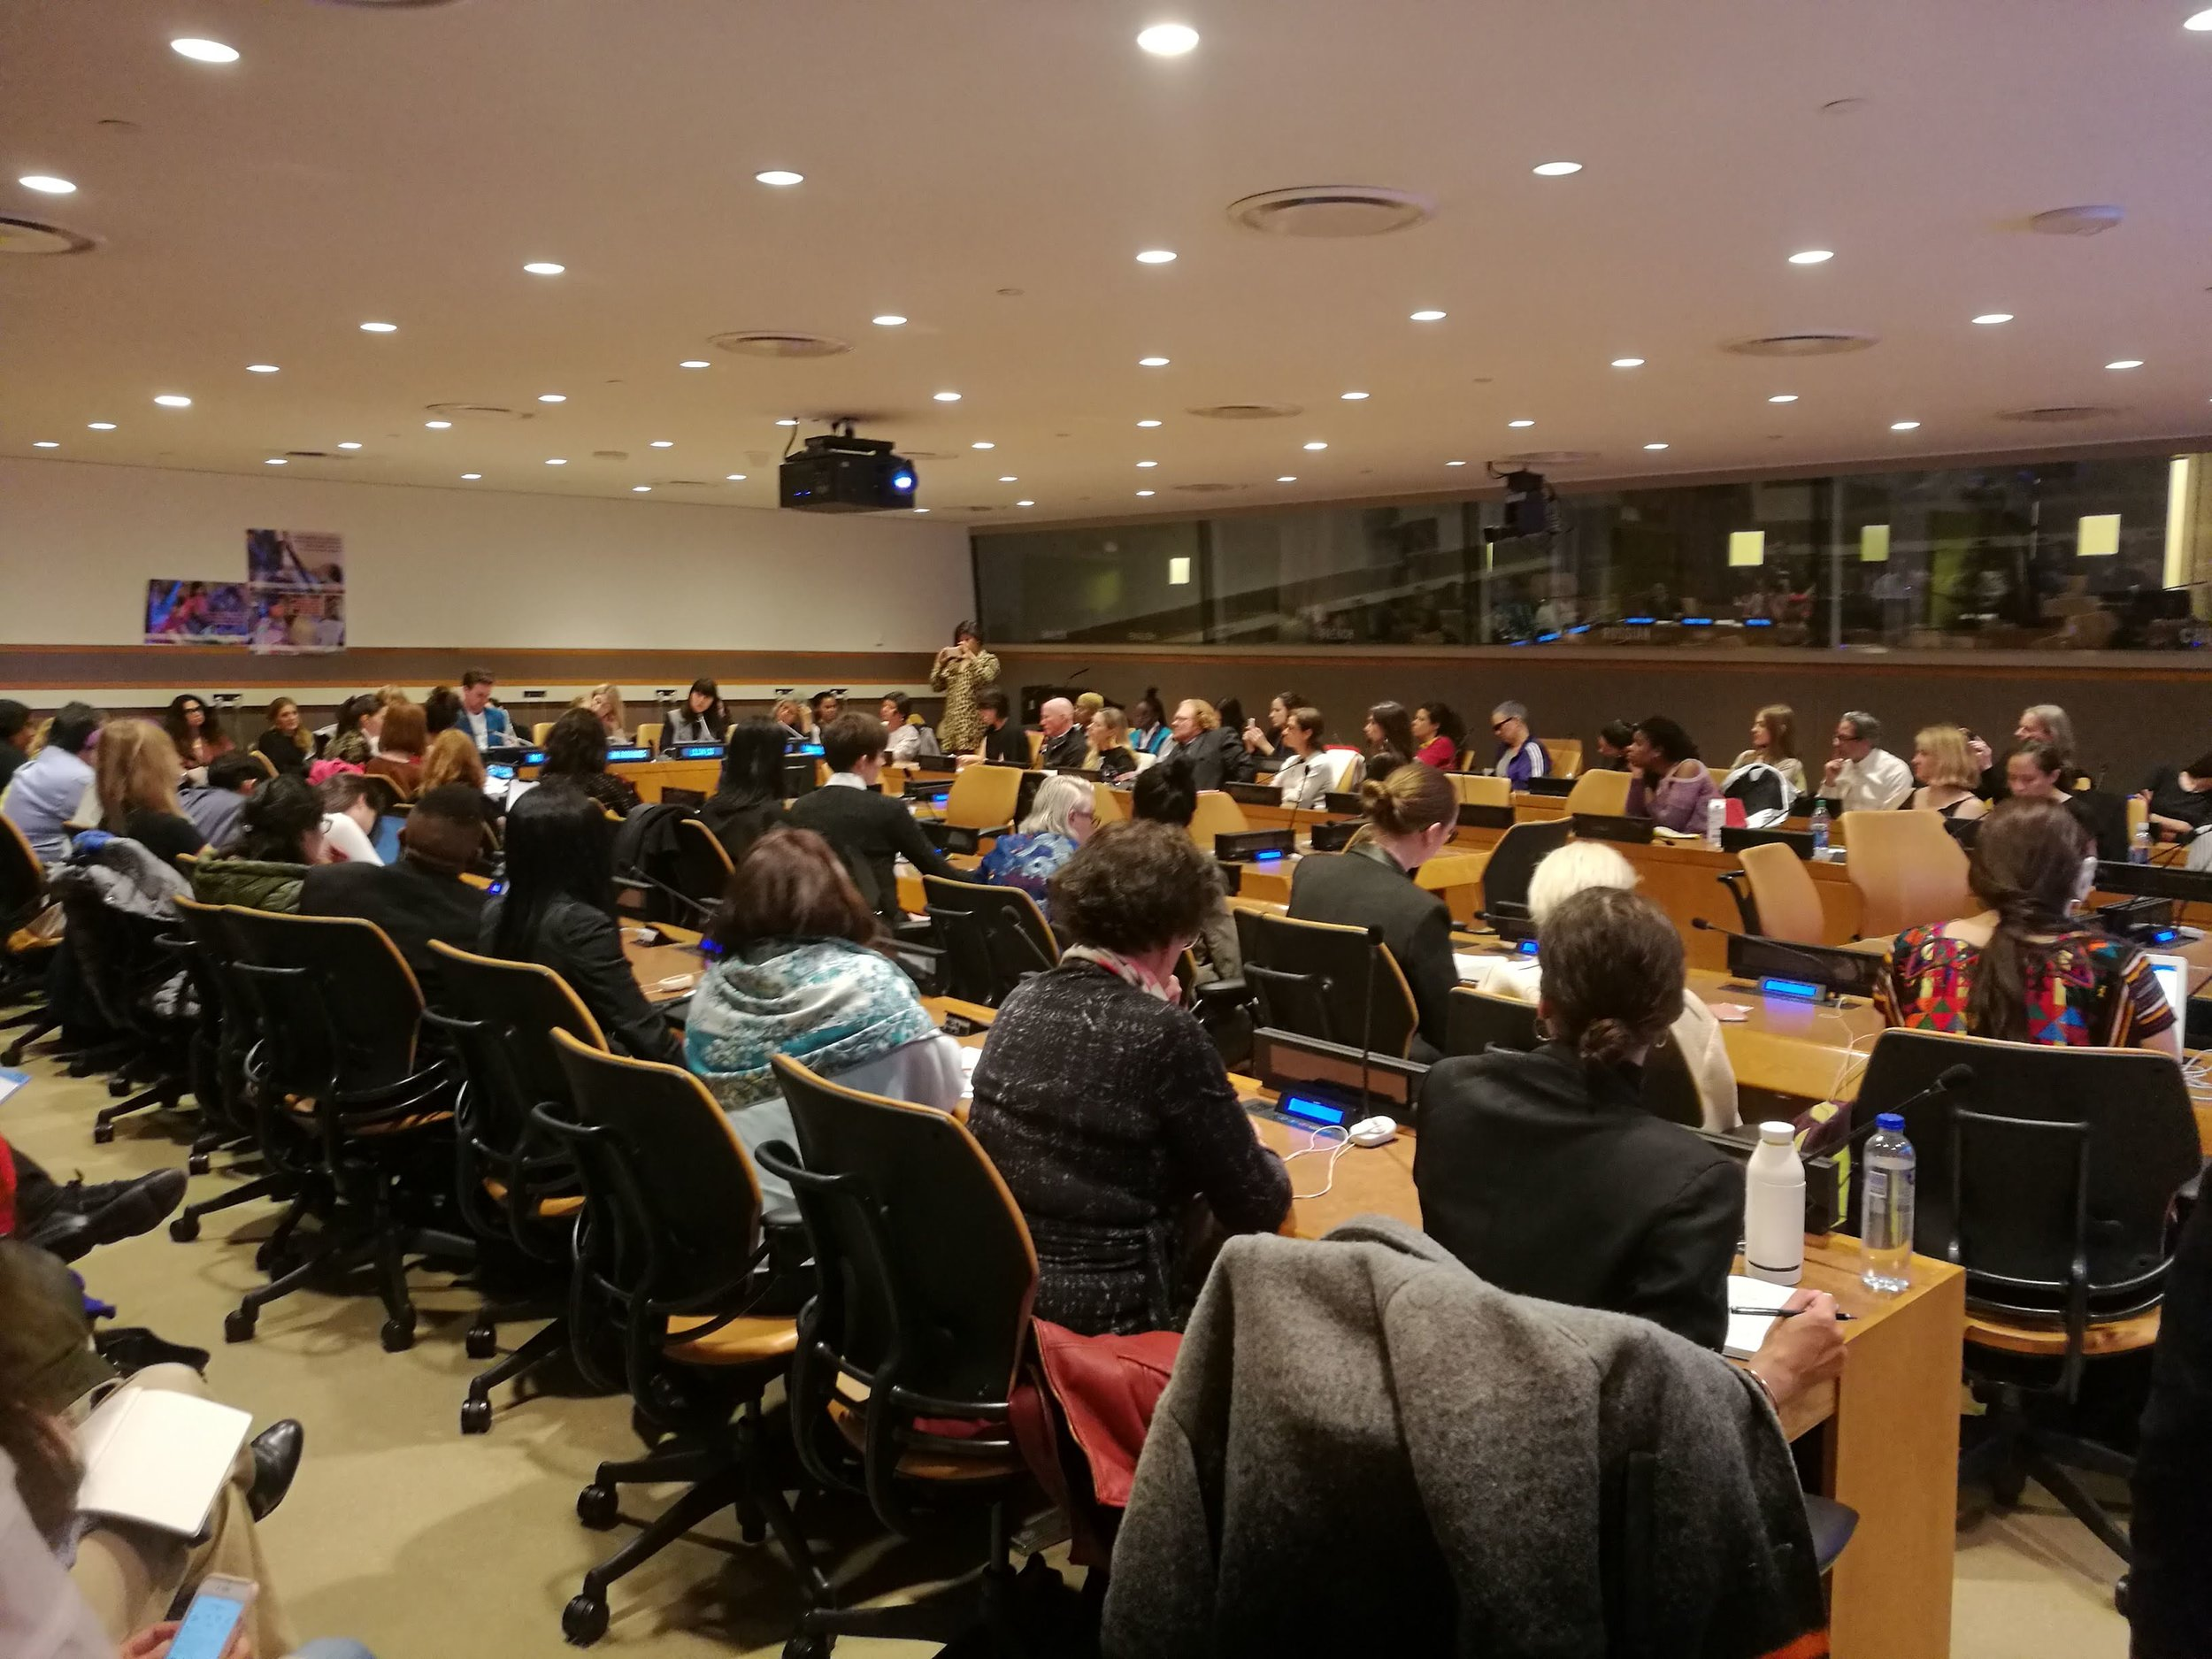 UNPFII: Artisanship as Means for Empowerment and Sustainability in Fashion - April 23, 2019